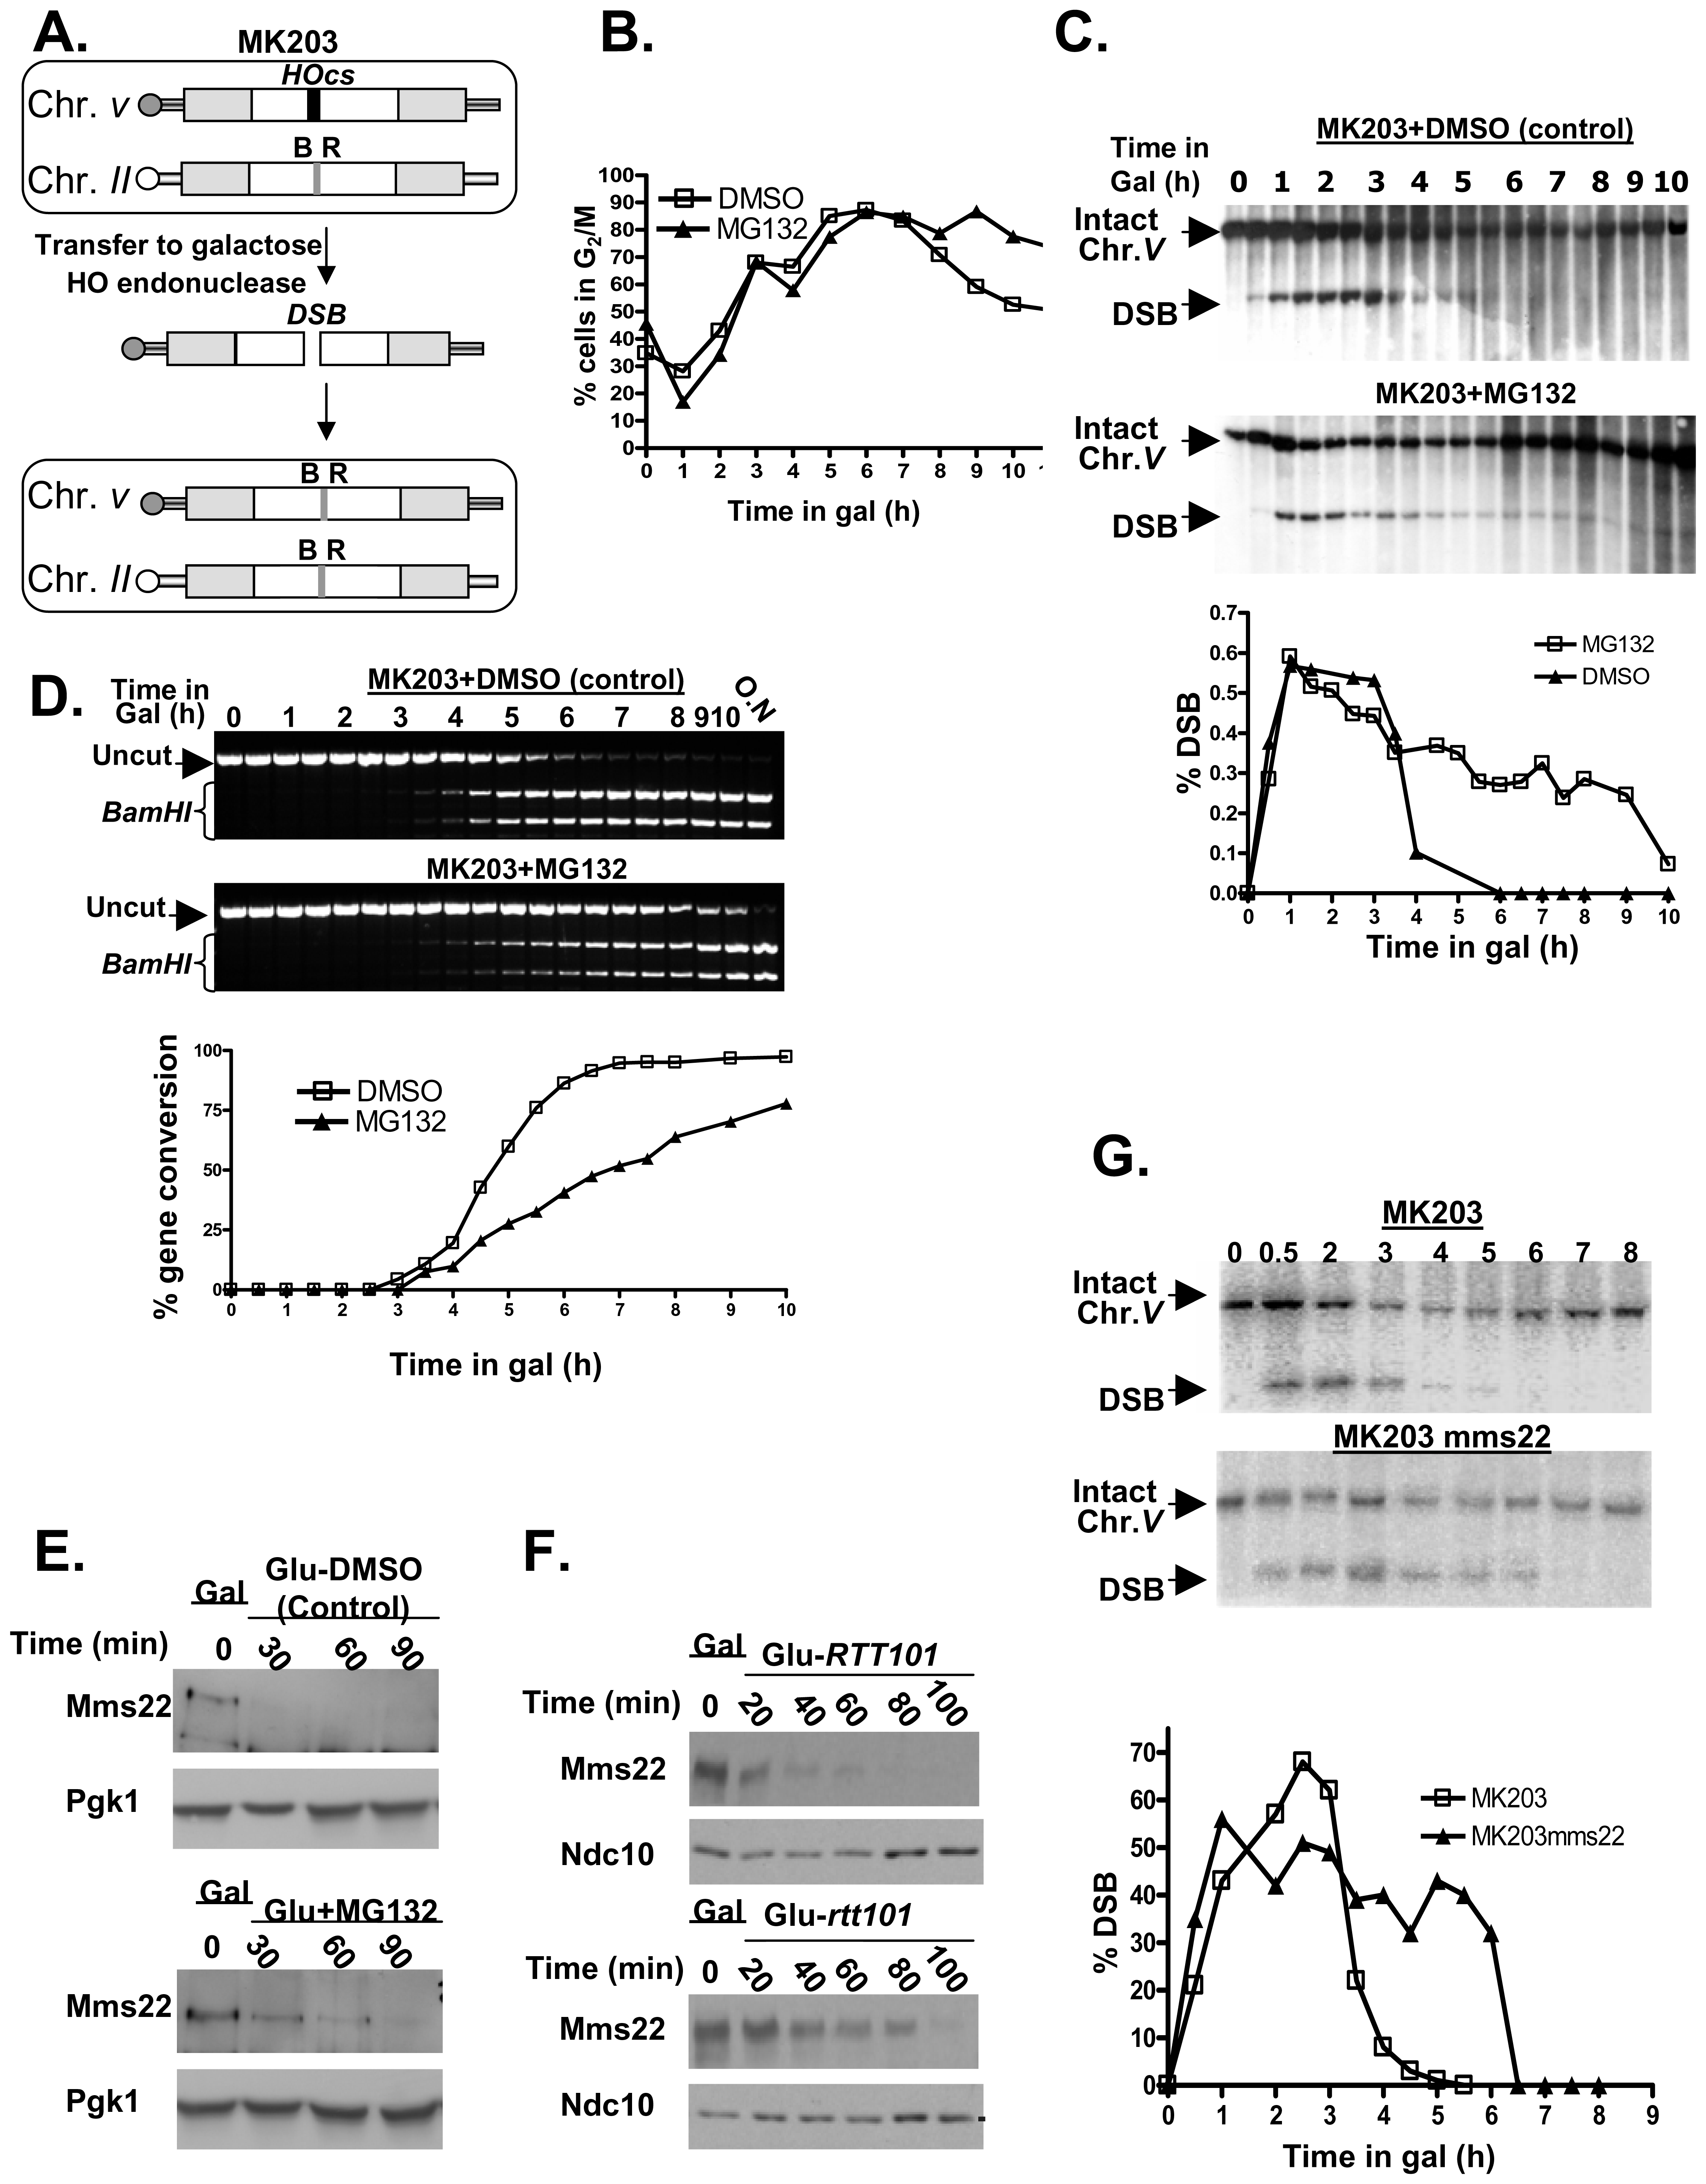 Proteasome mutants exhibit defective DSB repair kinetics; the turn over of Mms22 is regulated by the proteasome; Mms22 plays a role in DSB repair.